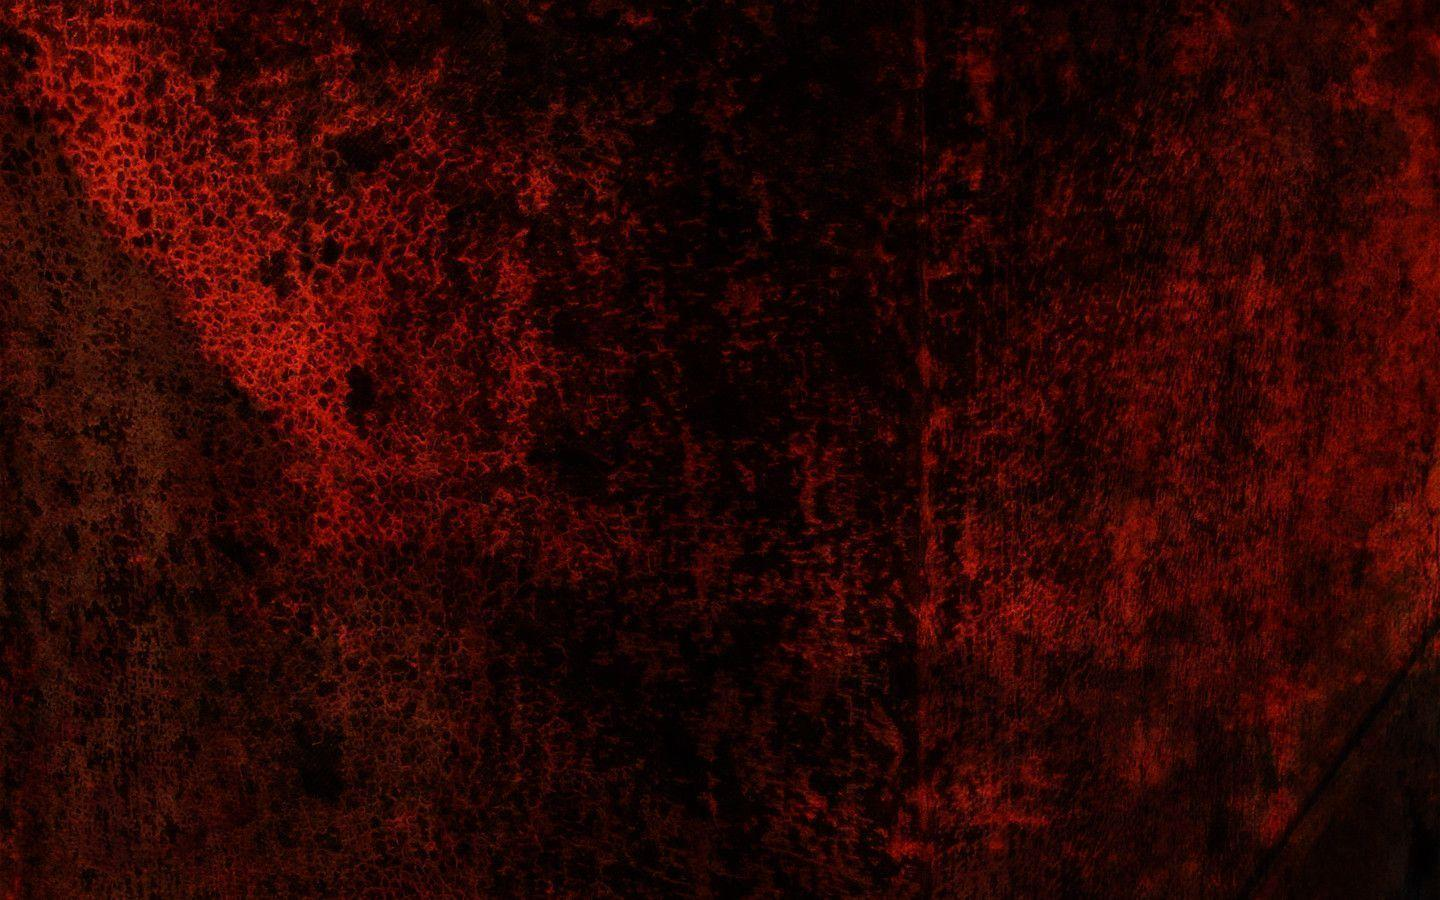 Blood Red Wallpapers Wallpaper Cave HD Wallpapers Download Free Images Wallpaper [1000image.com]